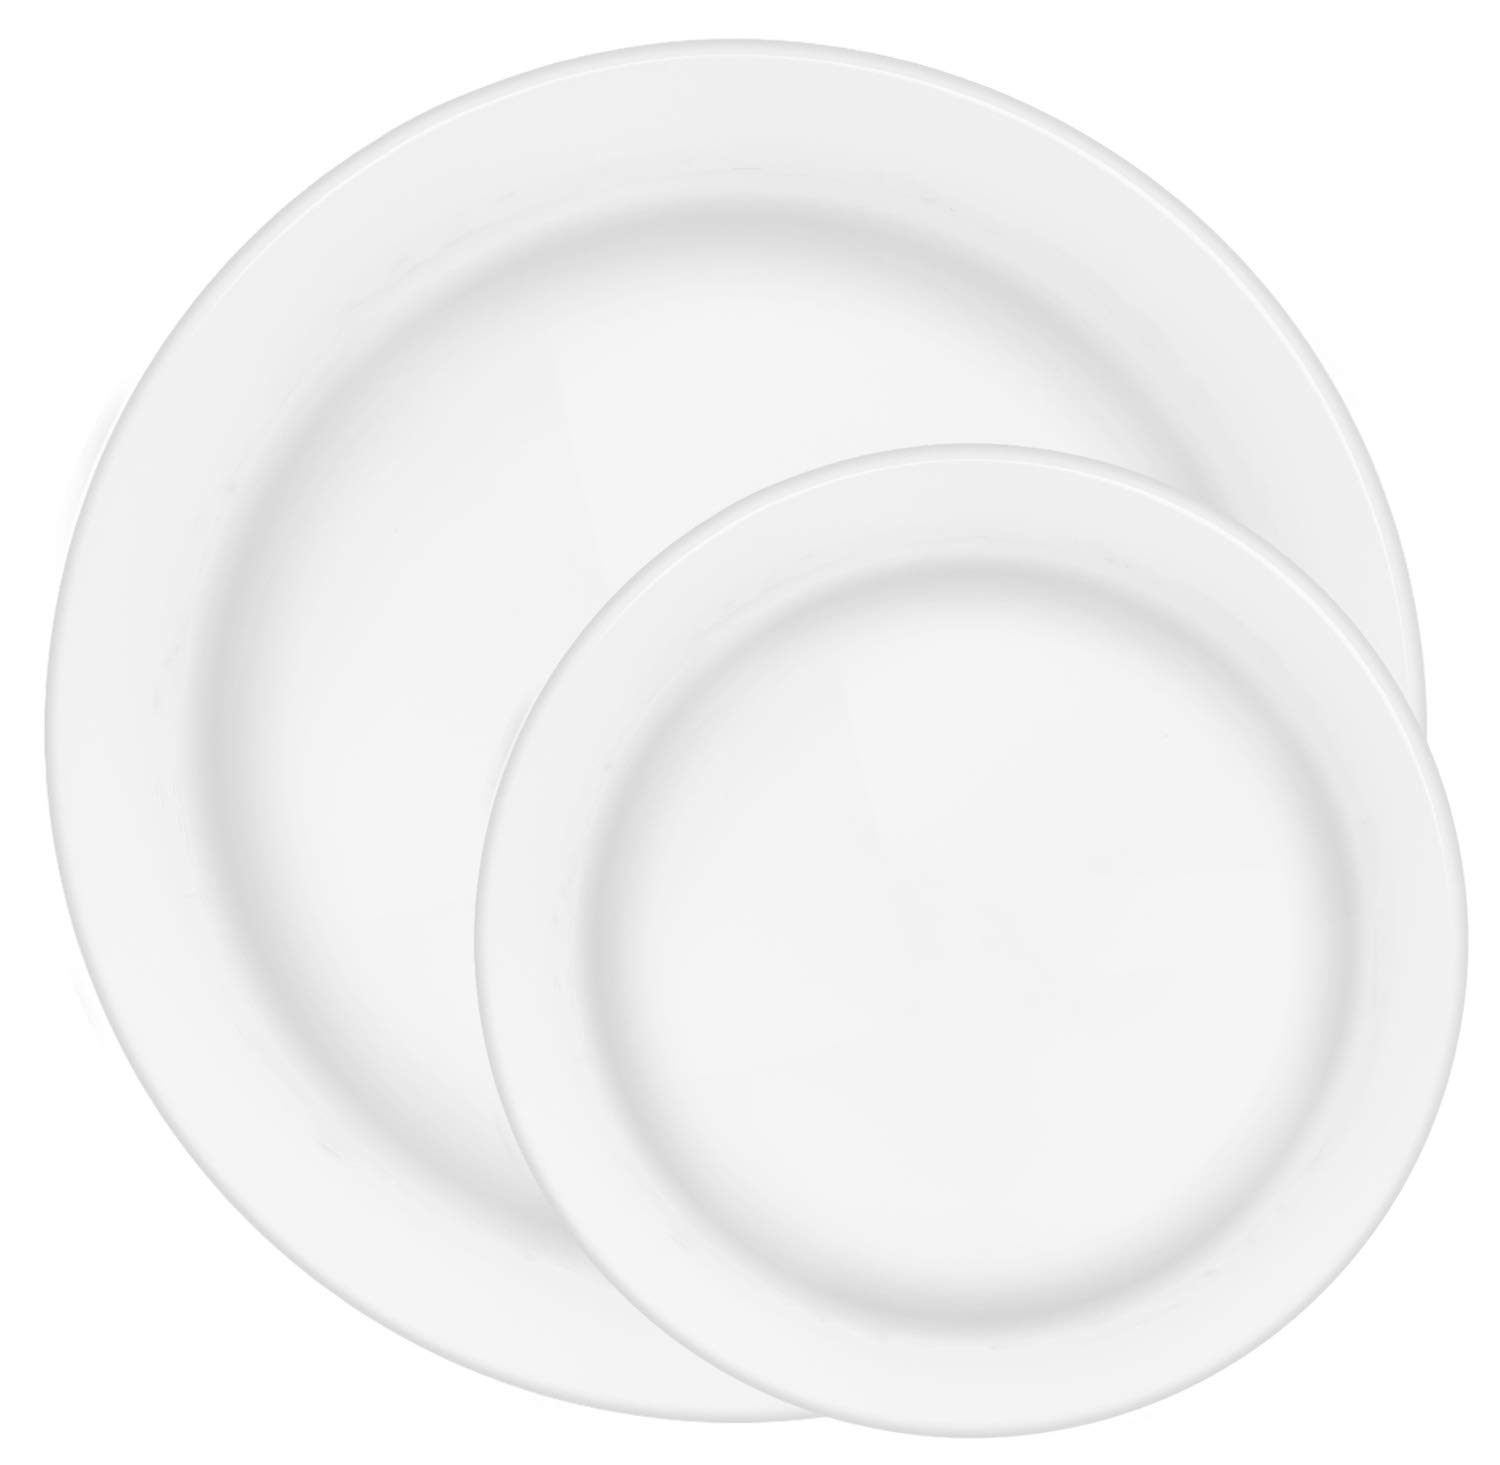 60 Premium Plastic Plates for Dinner Party or Wedding - 30 10.5 Inch & 30 7.5 Inch White Disposable Plate Set by Ilyapa